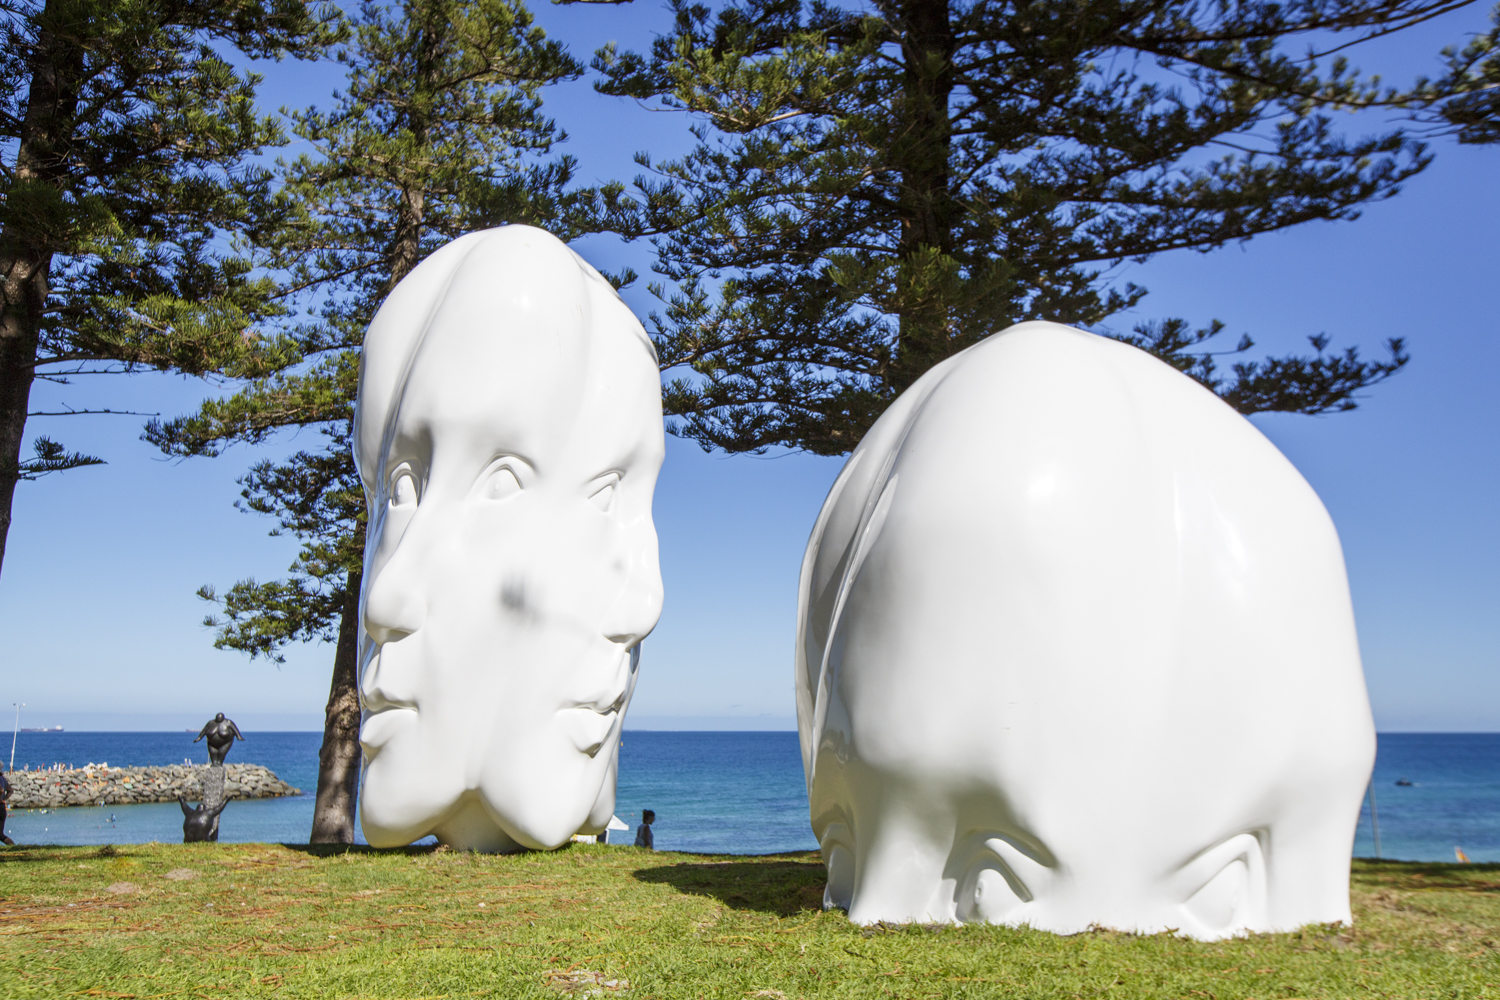 Sonia Payes, Re:Generation, Sculpture by the Sea, Cottesloe 2016. Photo Jessica Wyld.